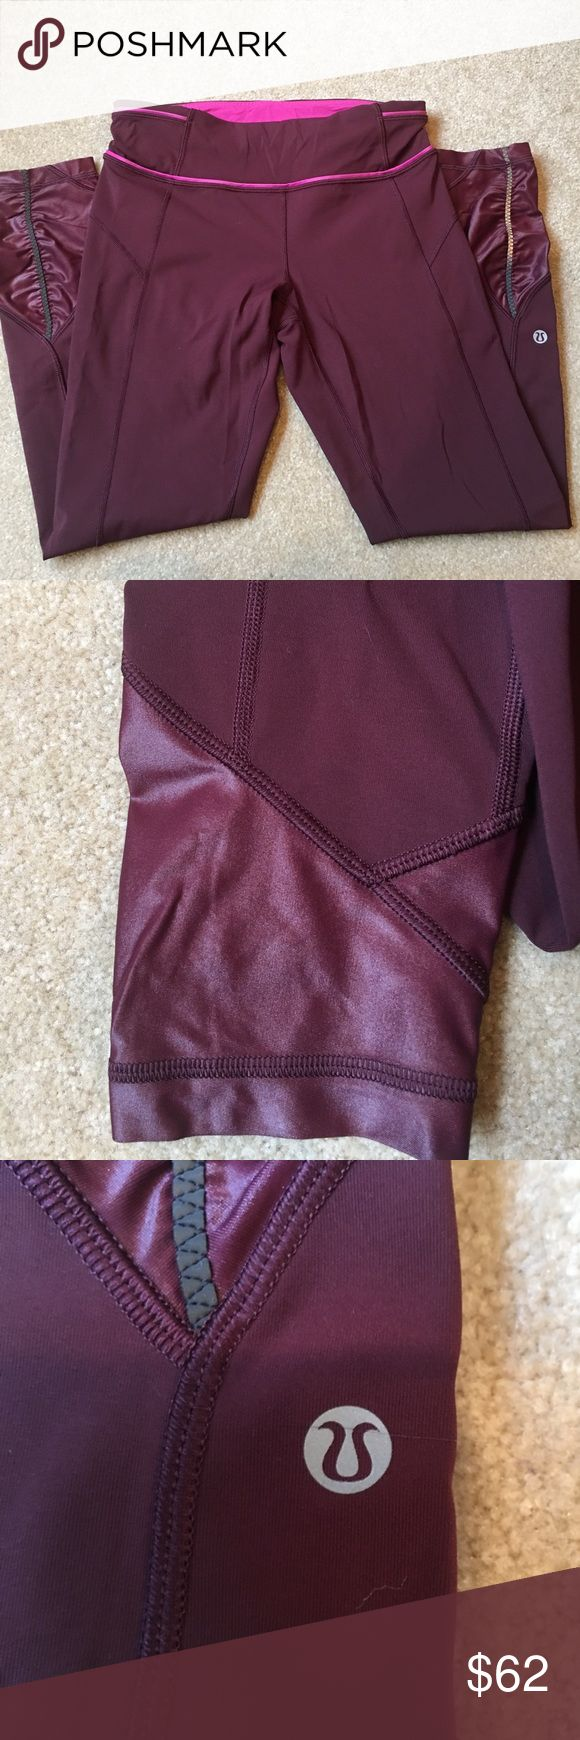 Lululemon Pace Queen Tights My first lulu's! Nothing wrong just opening space for new pieces! Time to let them go to a new home. Bordeaux raspberry color with pink contrast along the waistband. Reflective strips on the legs. 7/8 length and size 6. No trades and the price is firm. 🍋 lululemon athletica Pants Leggings